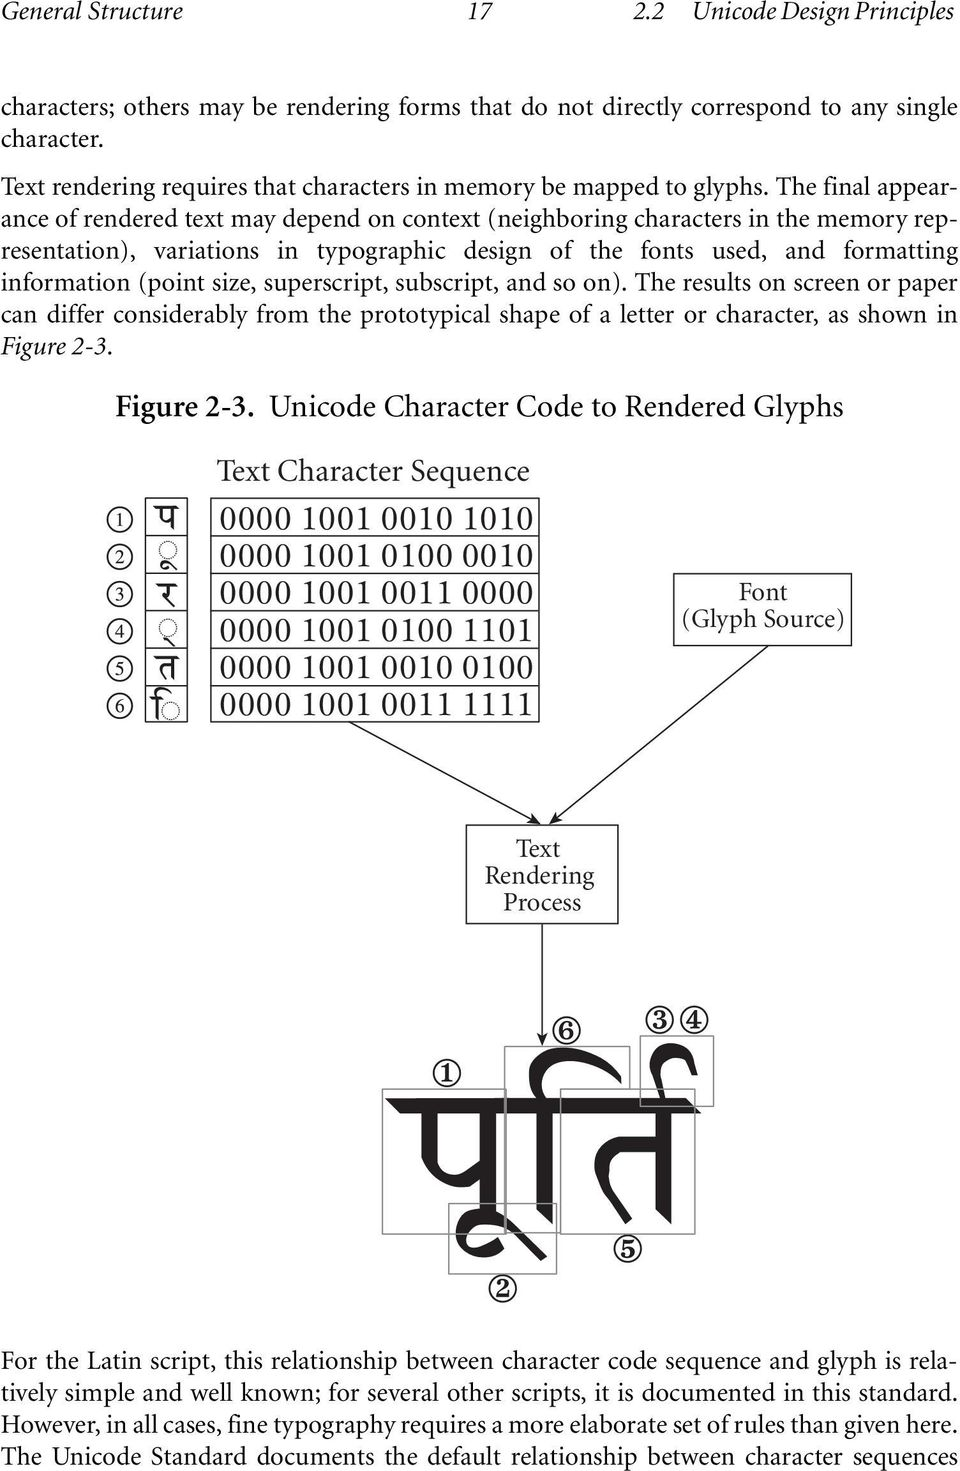 The final appearance of rendered text may depend on context (neighboring characters in the memory representation), variations in typographic design of the fonts used, and formatting information